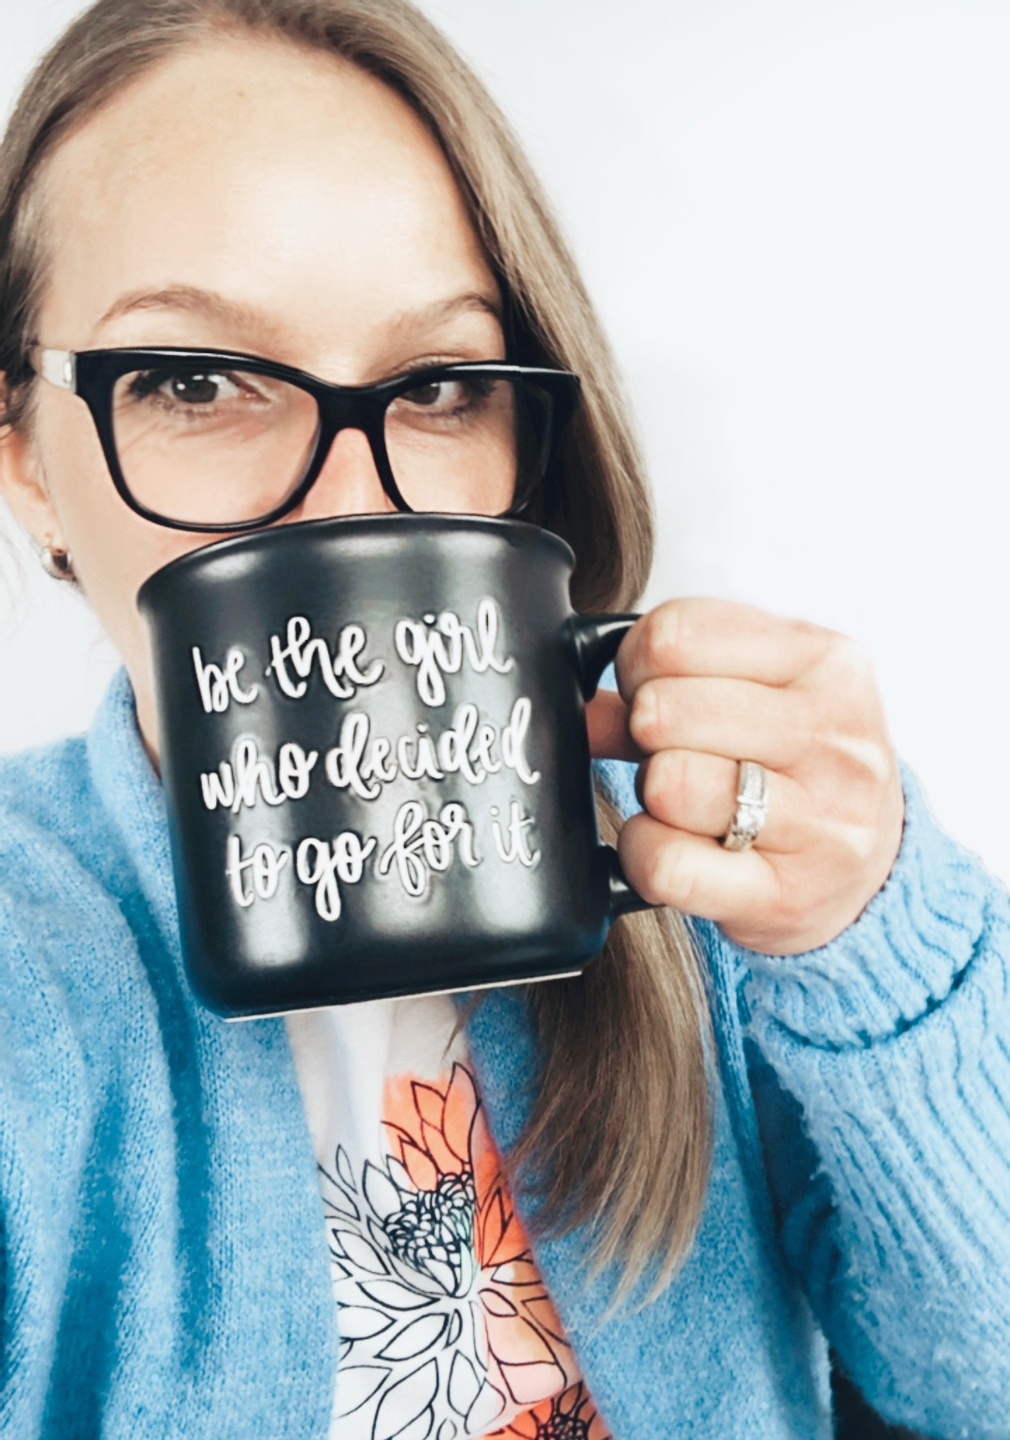 Katarina Hadden with a cup of coffee. Cup has a quote